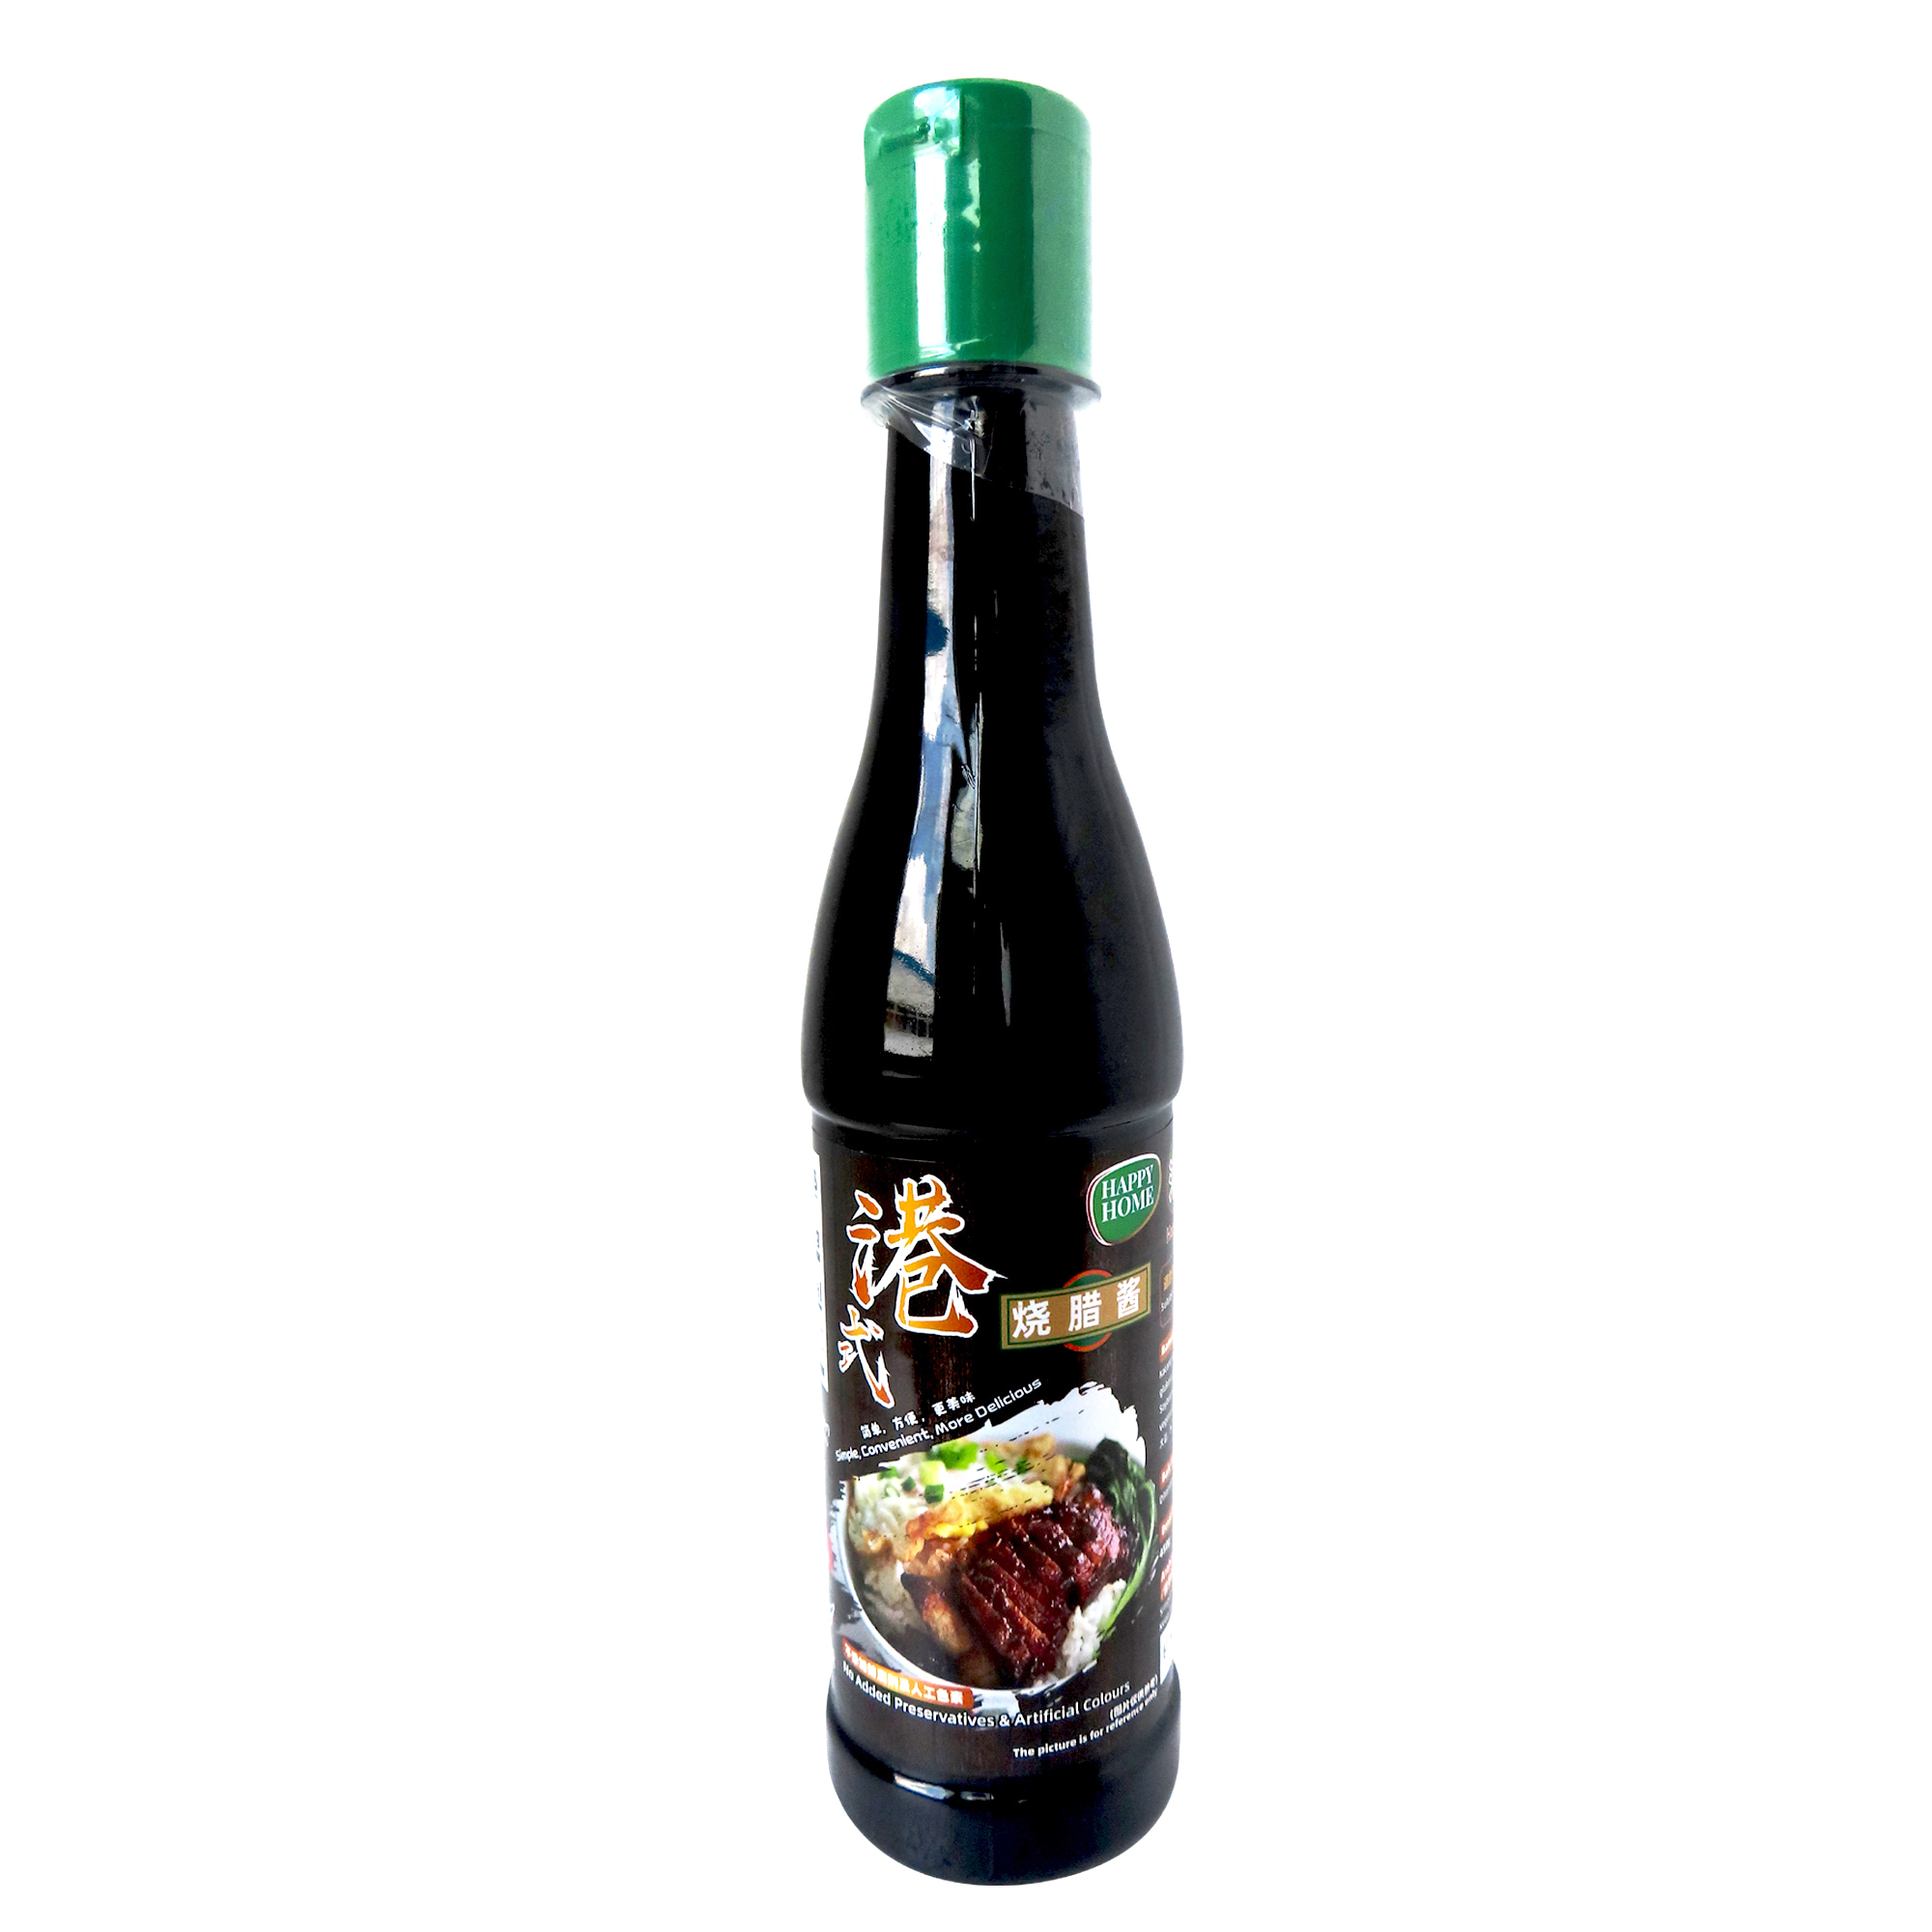 Image Happy Home Hong Kong Style Roasted Sauce 港式烧腊酱 450grams